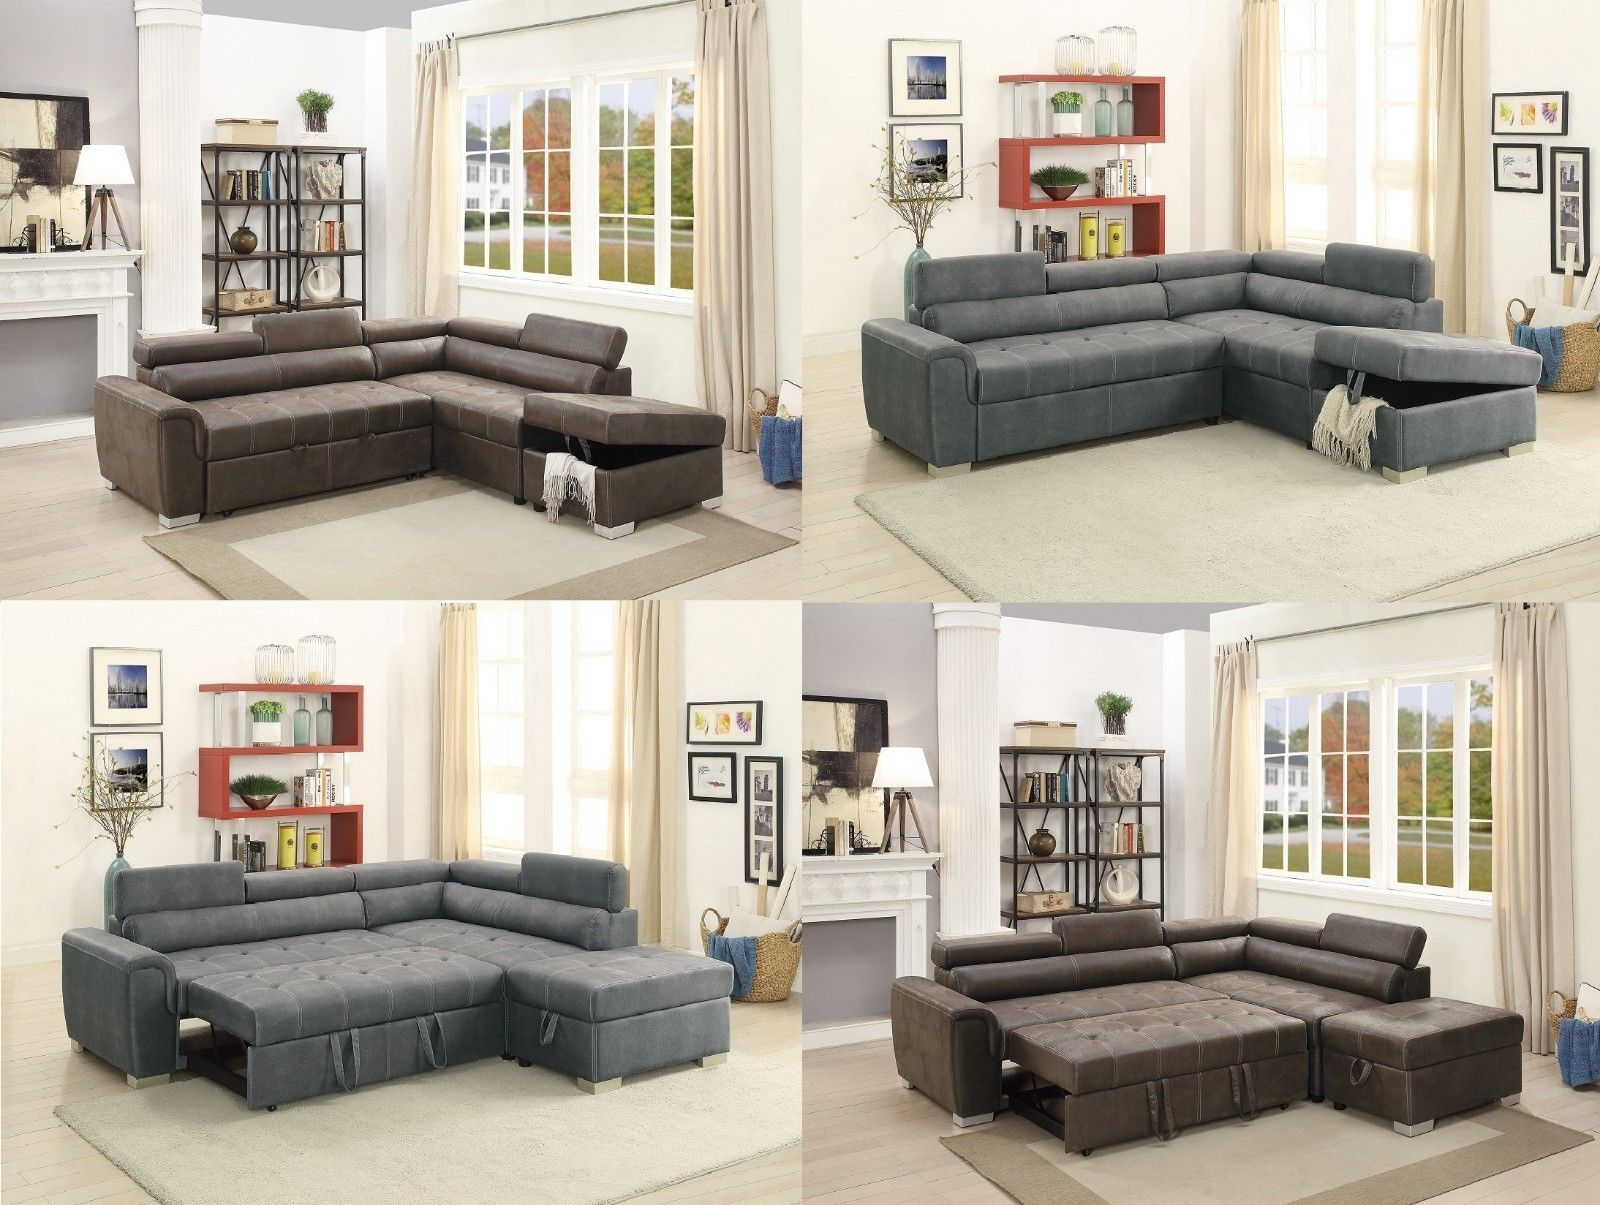 Leatherette Tuftd Sectional Sofa Flip Up Headrest Pull Out Bed Couch In 2  Colors